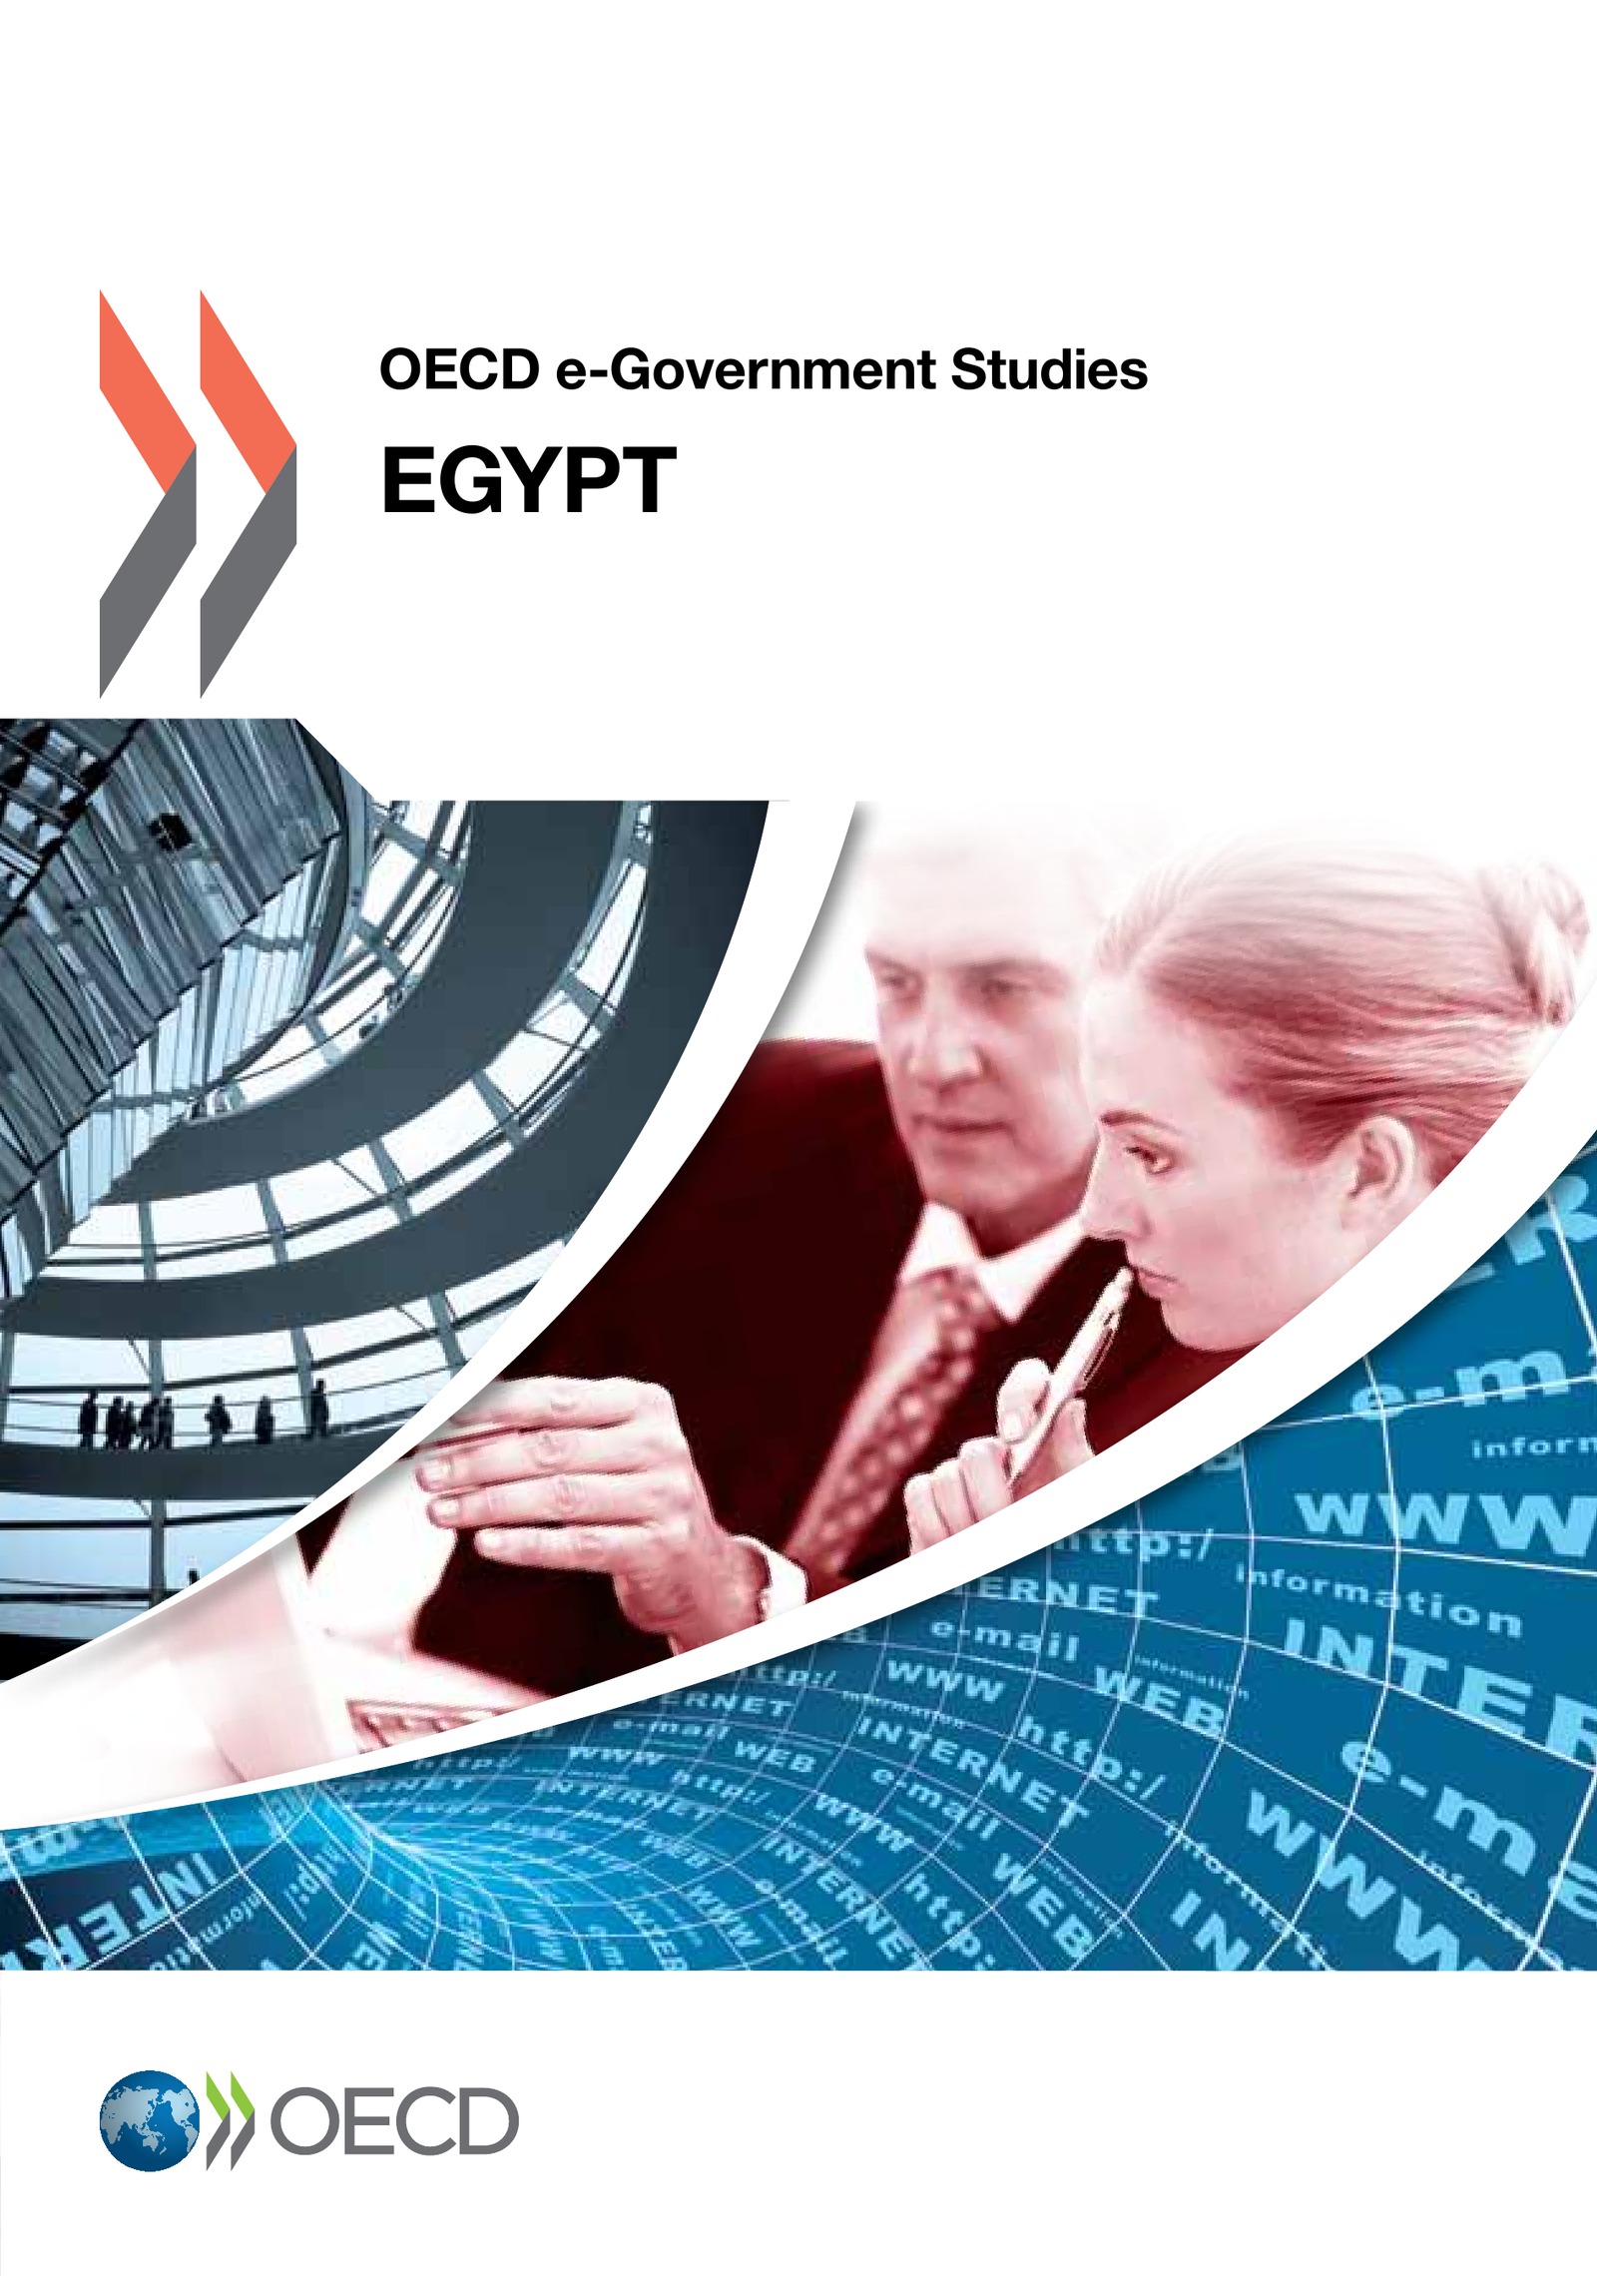 OECD e-Government Studies: Egypt 2013